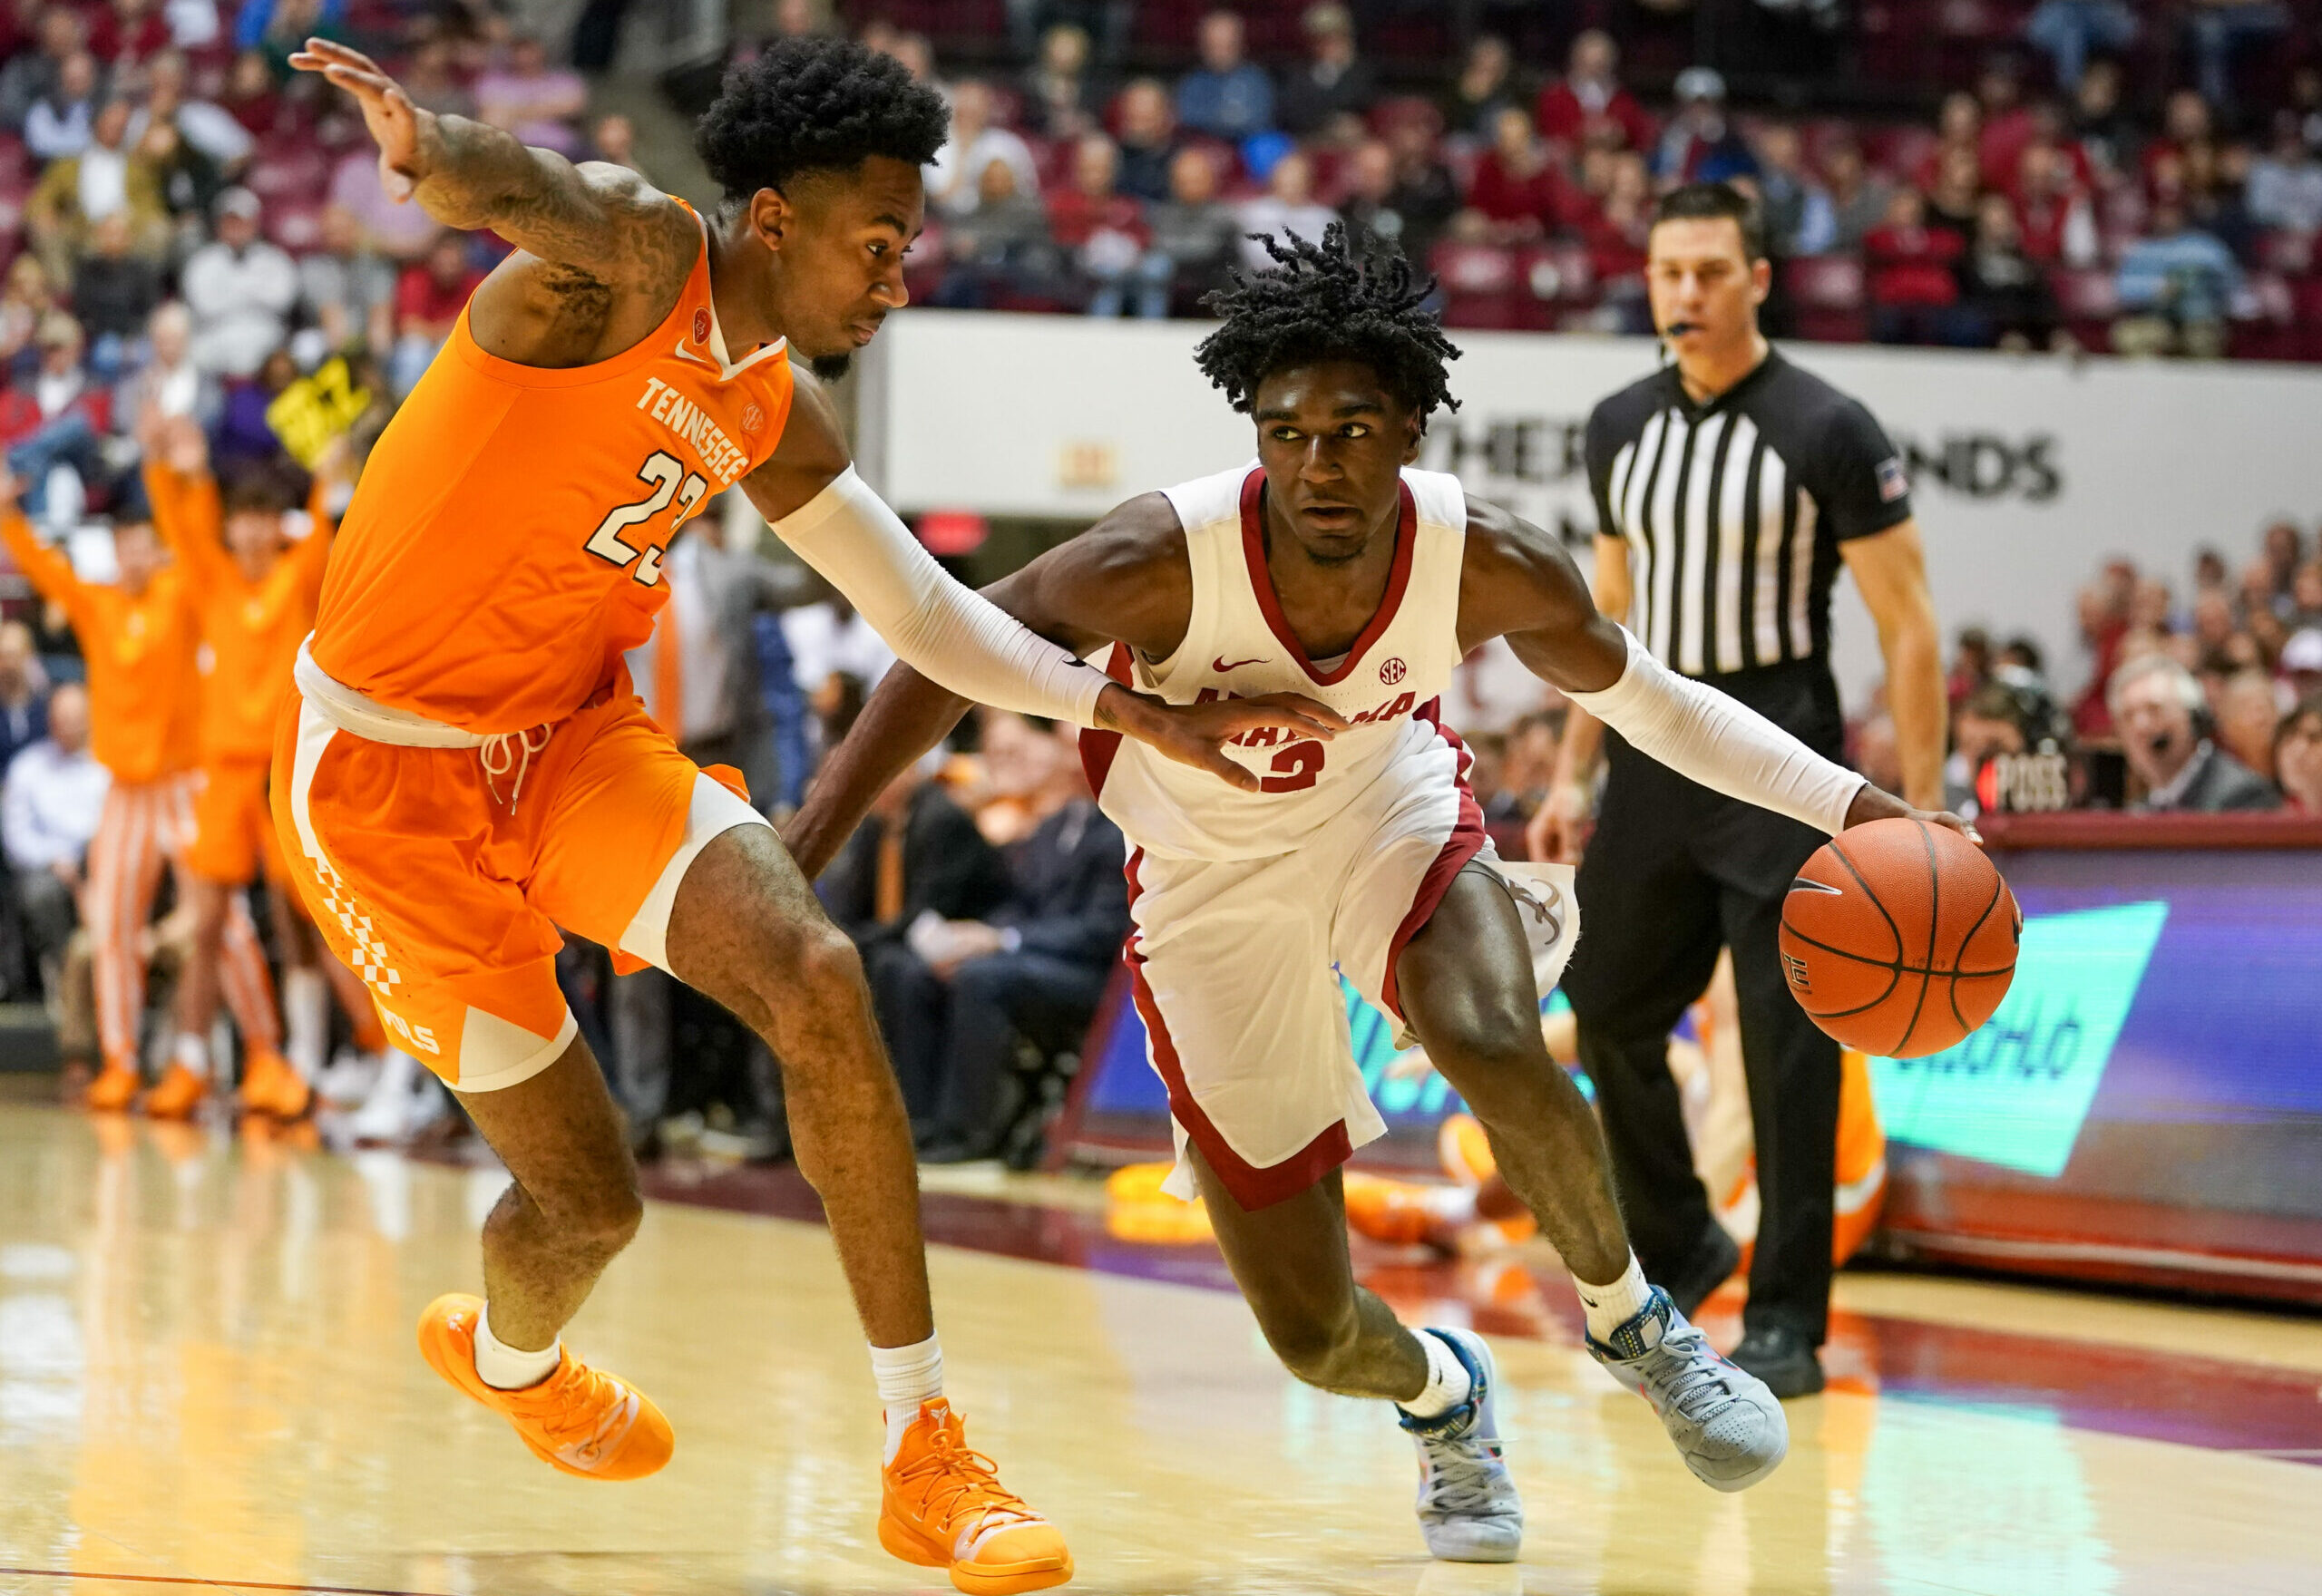 Alabama point guard Kira Lewis Jr. boasts speed, potential